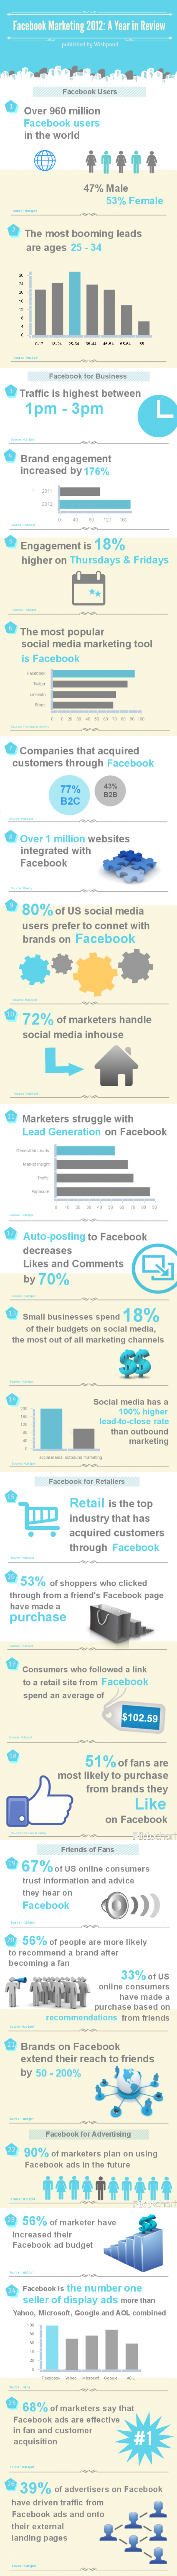 Facebook Marketing 2012: A Year in Review [Infographic] Triplefy.com